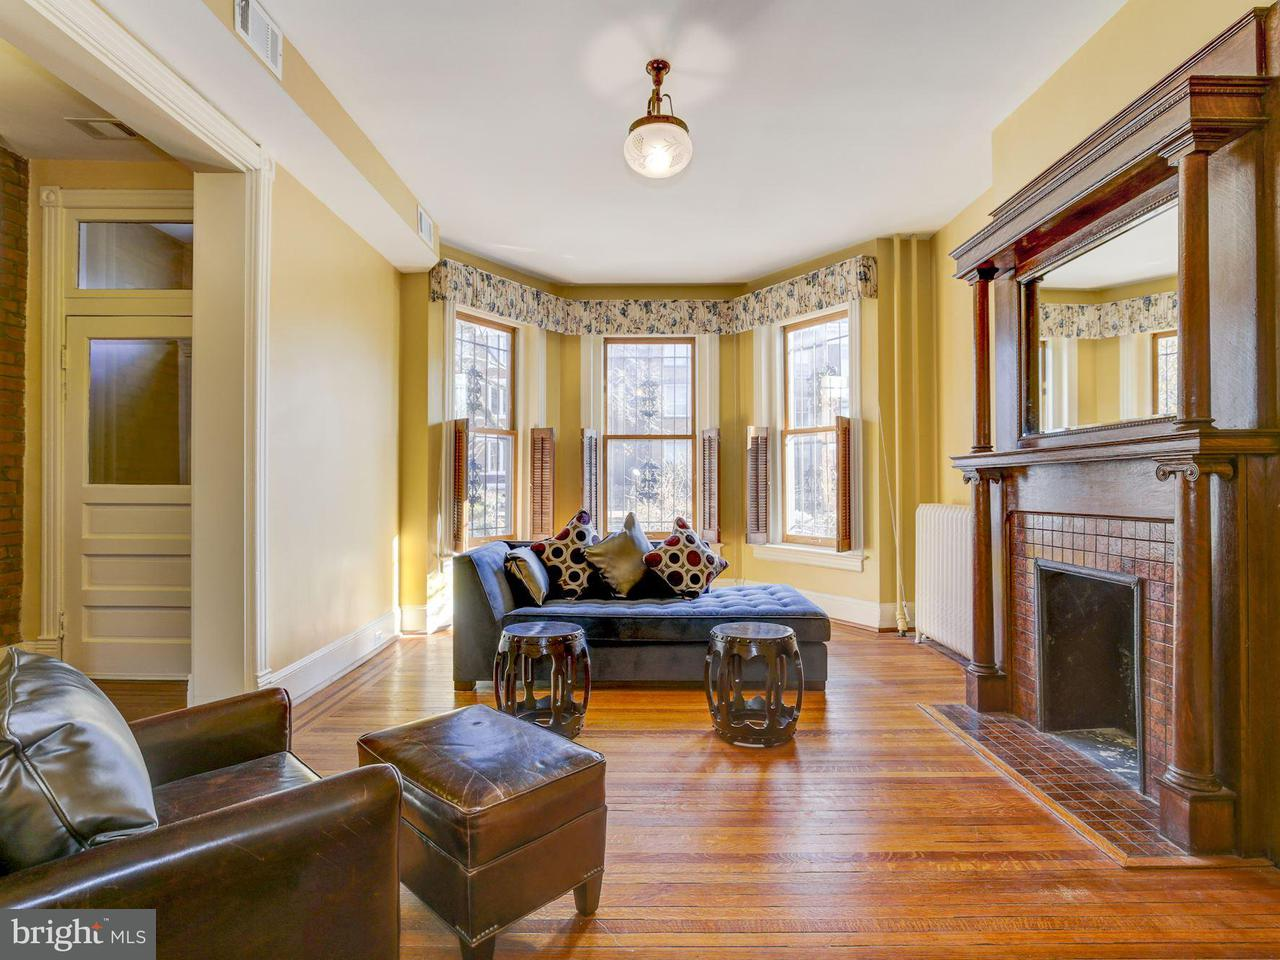 Single Family Home for Sale at 2216 1st St Nw 2216 1st St Nw Washington, District Of Columbia 20001 United States